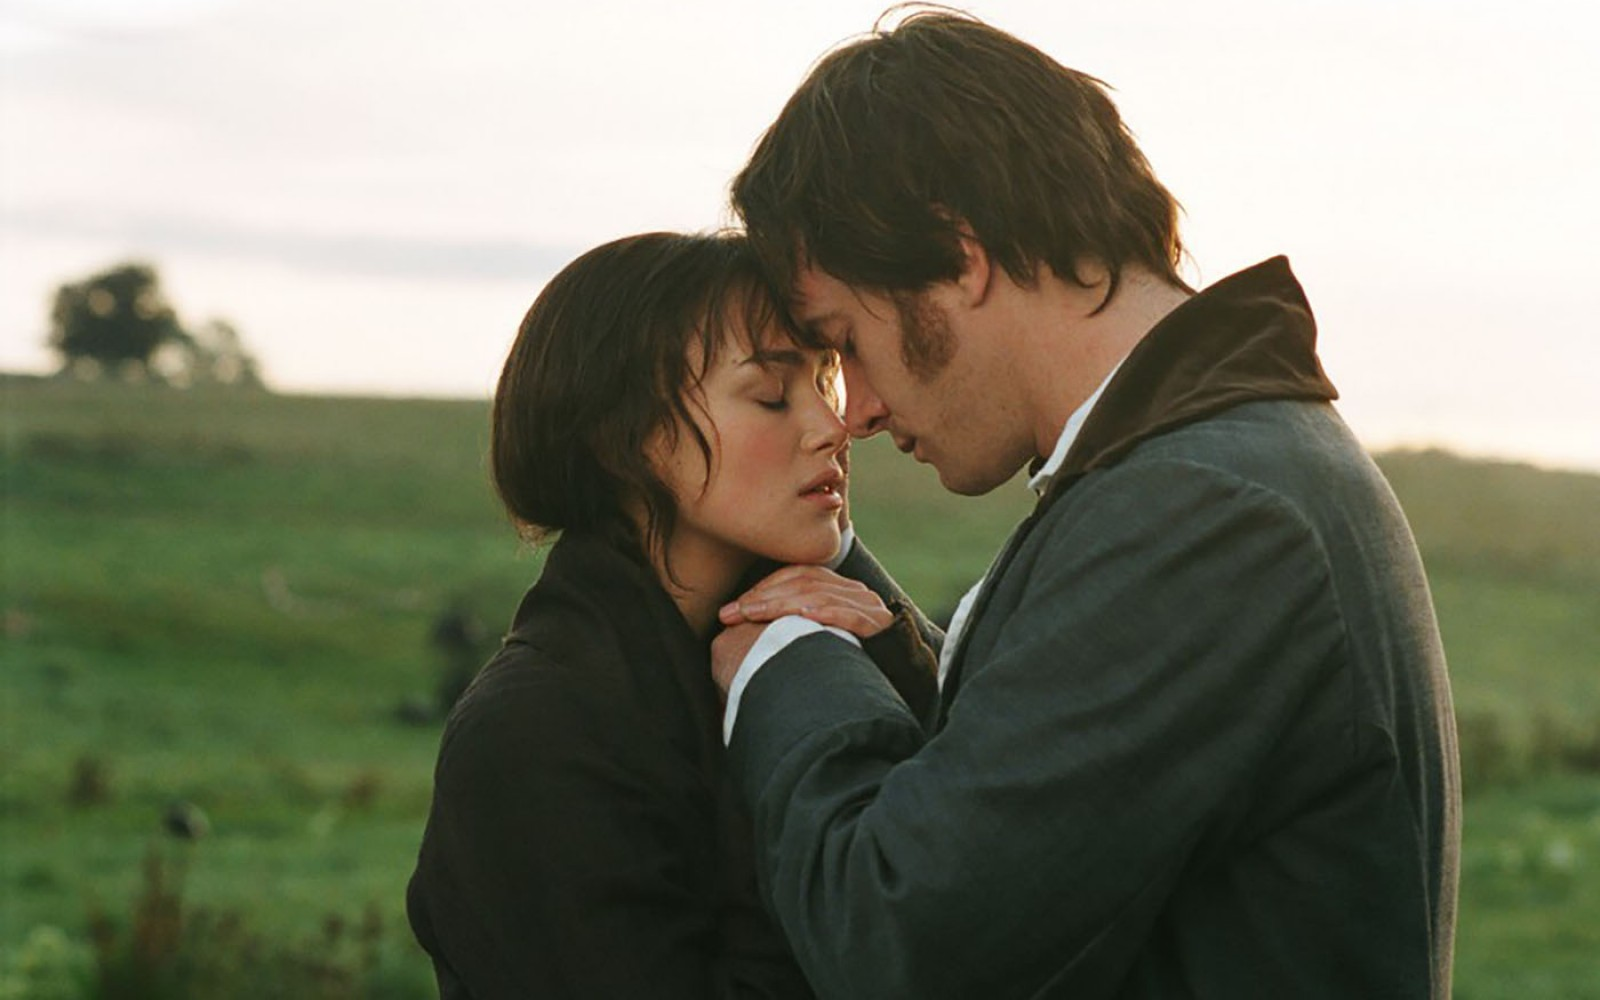 25 Deeply Romantic Jane Austen Quotes That Will Make You Long For Your Own Mr. Darcy